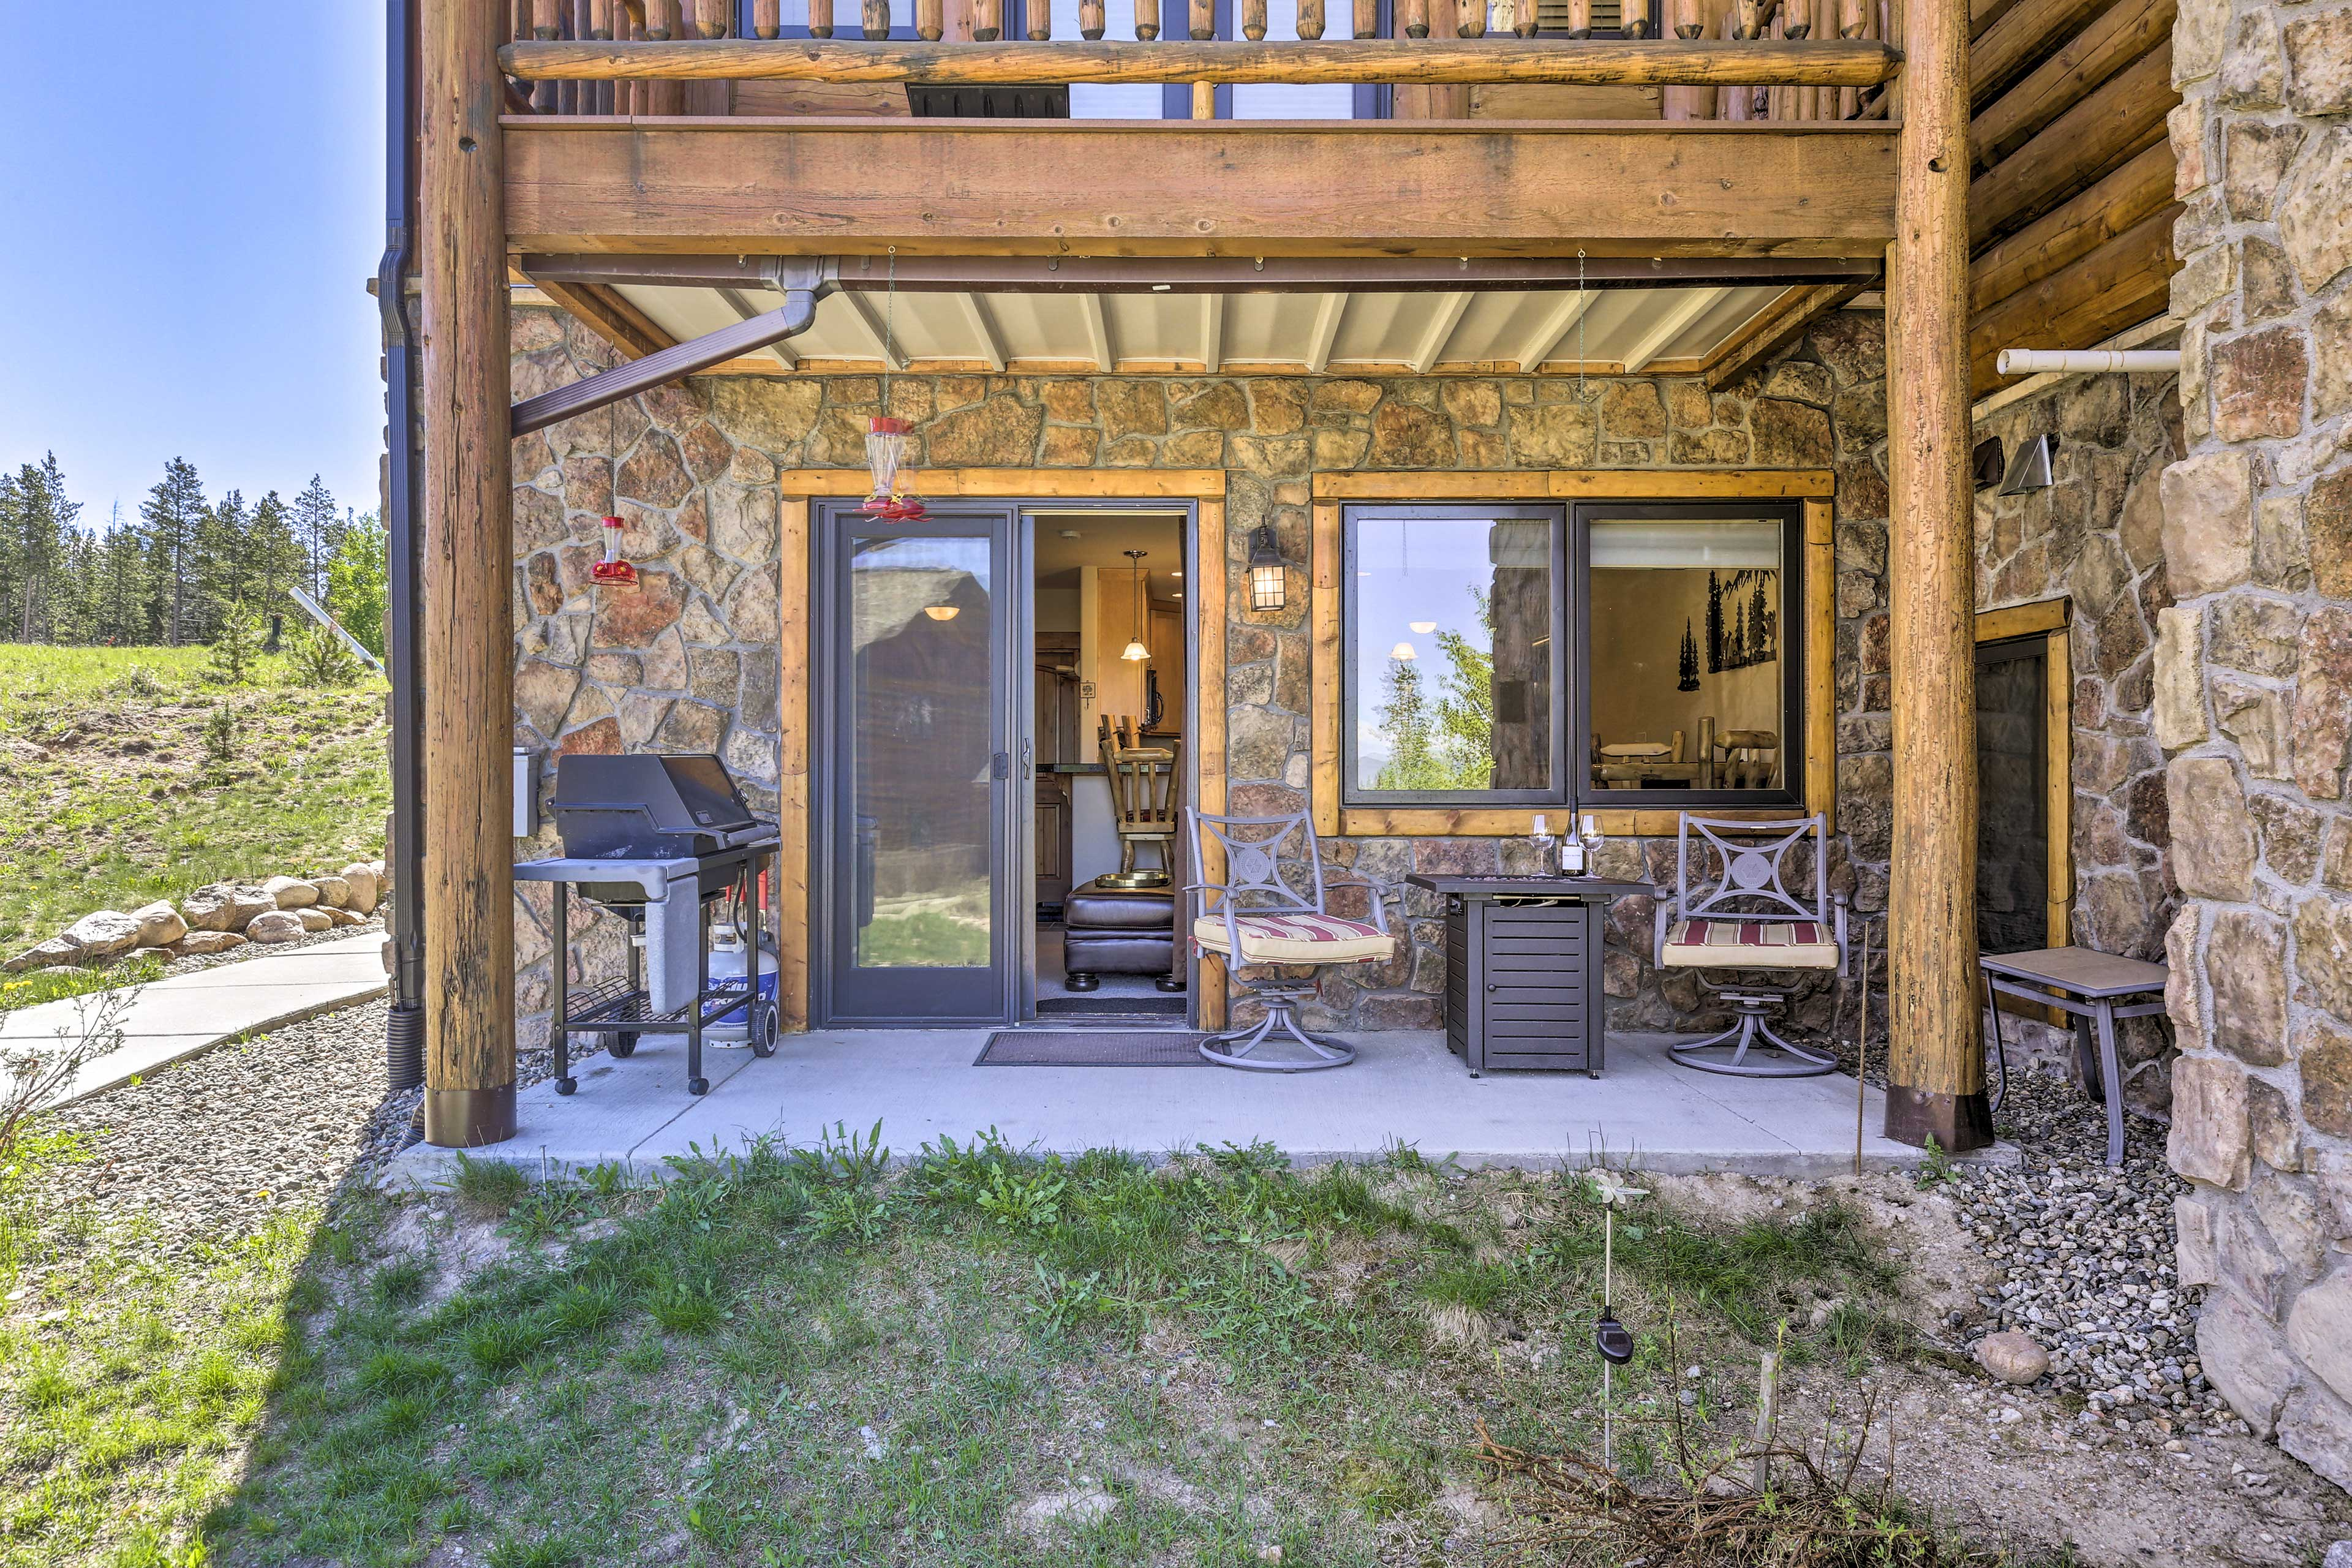 This vacation rental condo is located in the Summit Trail Lodges.